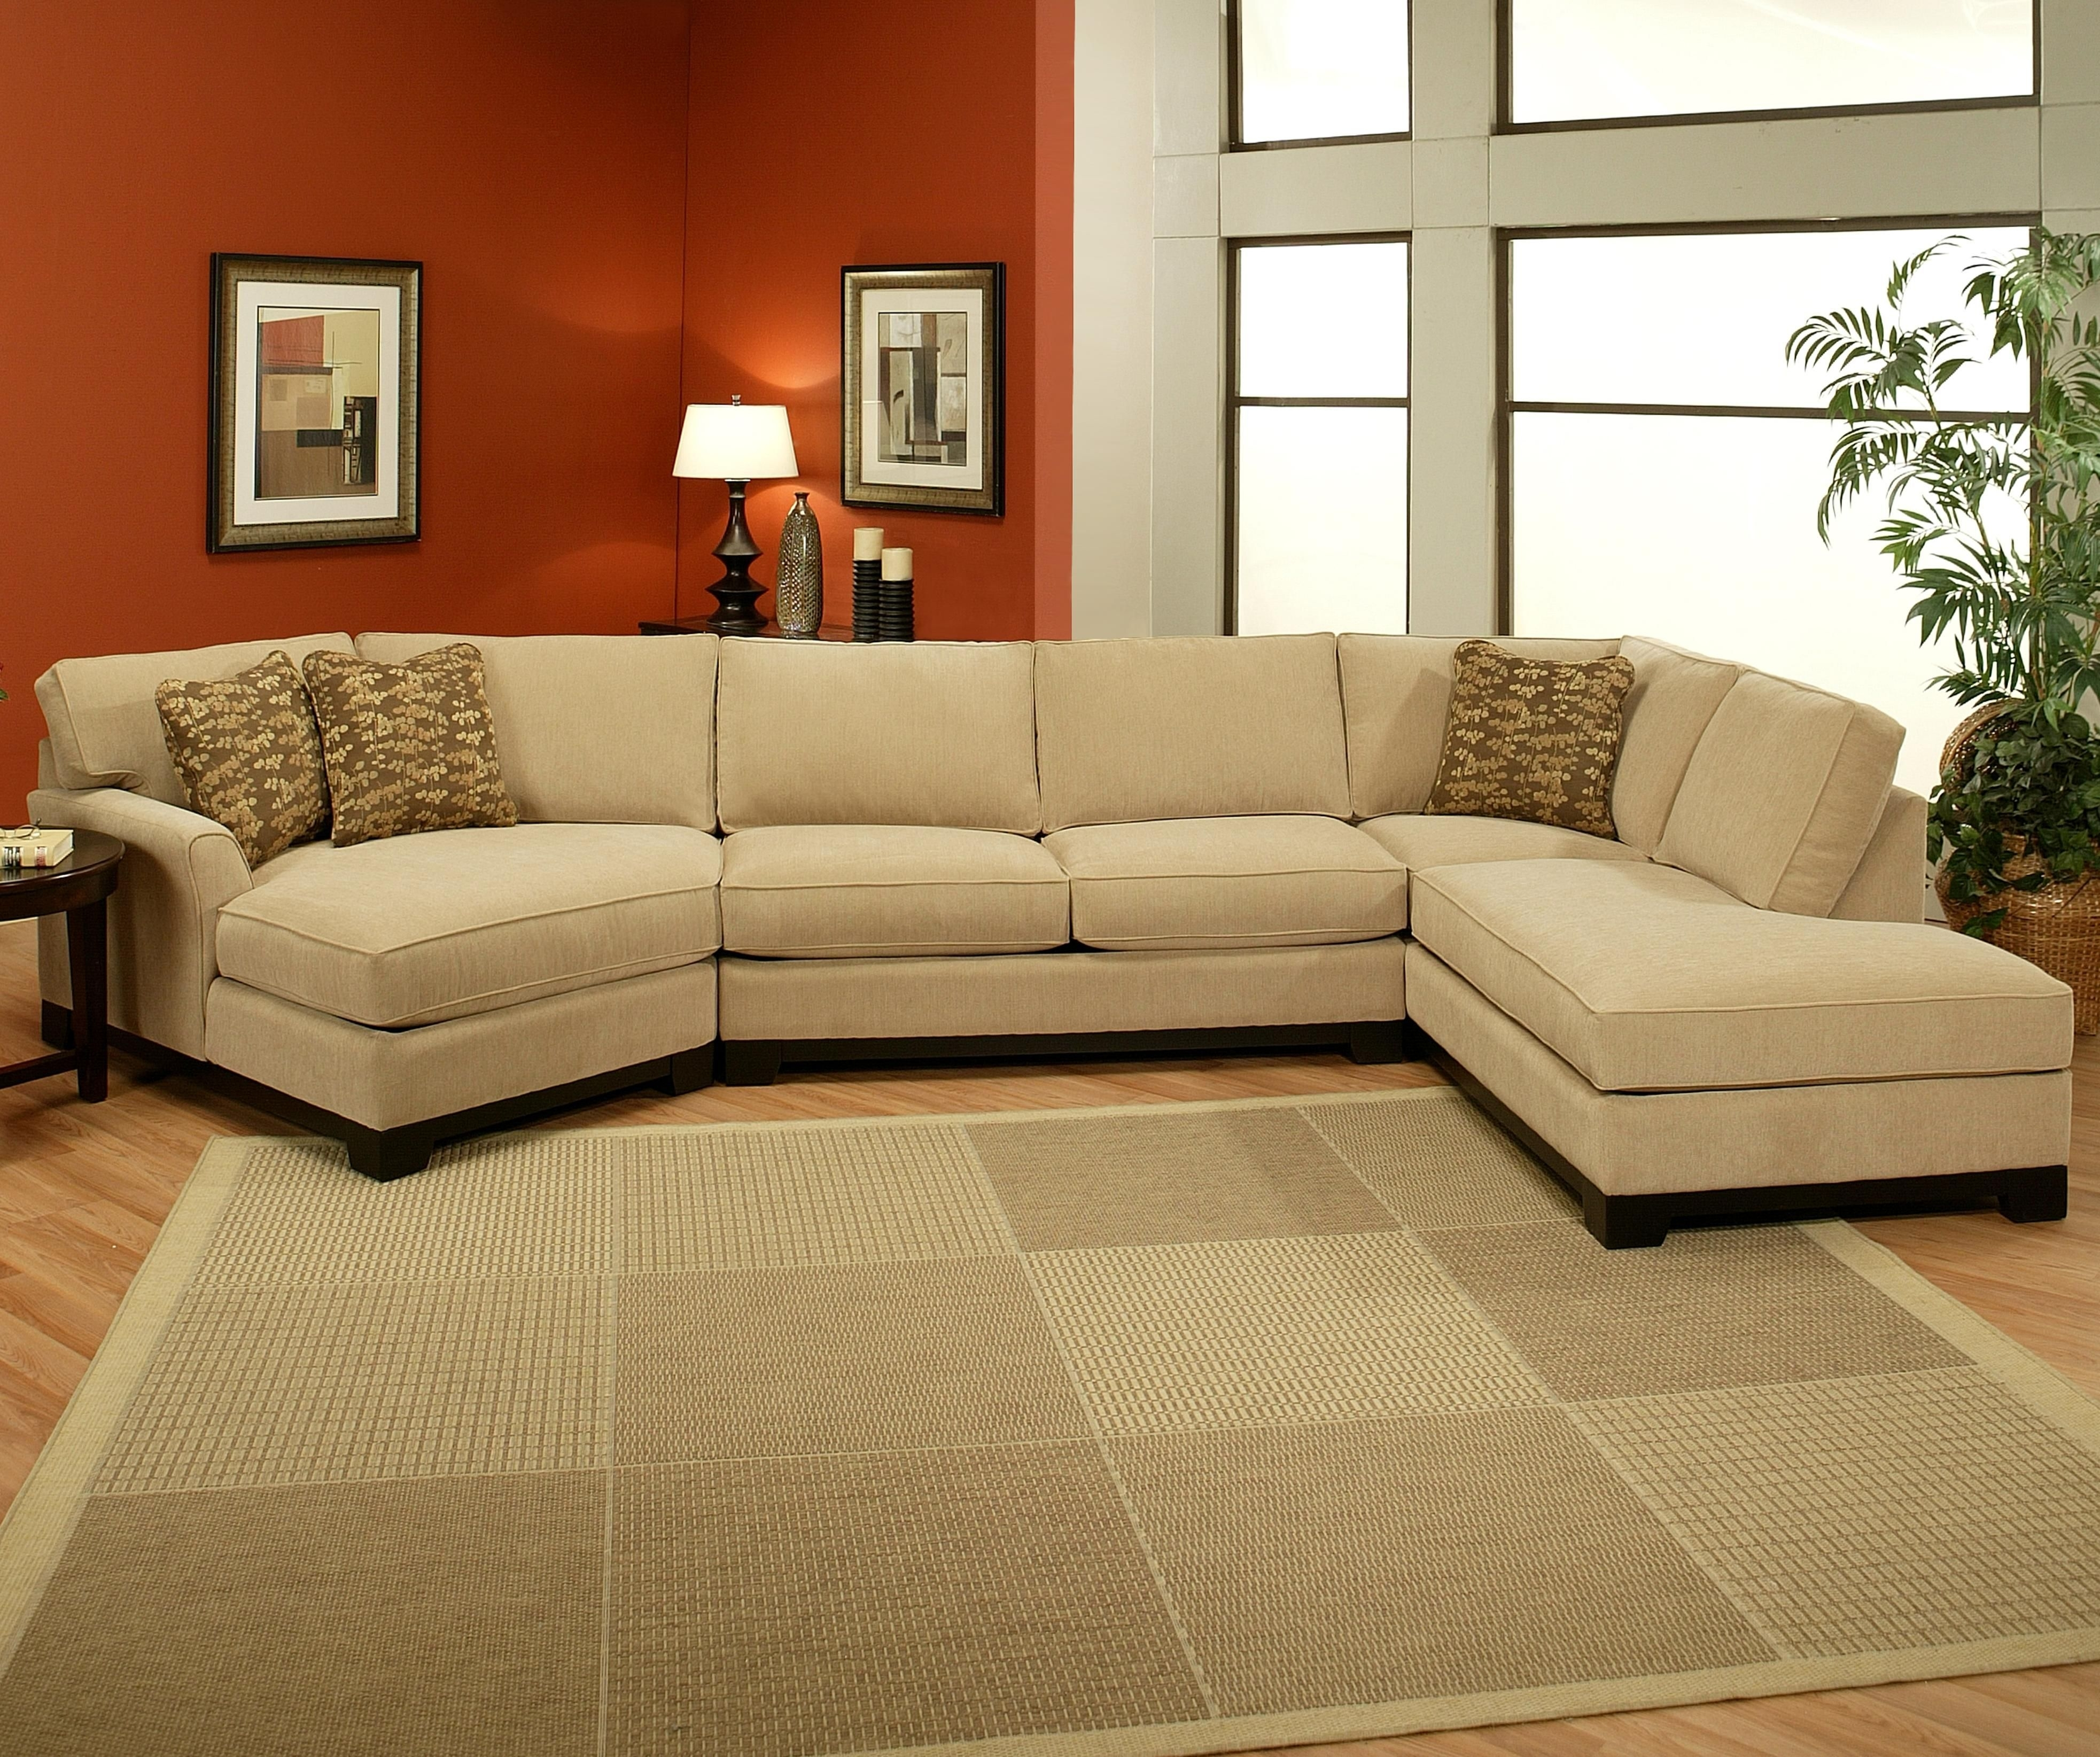 Sagittarius Sectional Jonathan Louis This Flip What Couch Locks throughout Norfolk Chocolate 6 Piece Sectionals With Raf Chaise (Image 22 of 30)